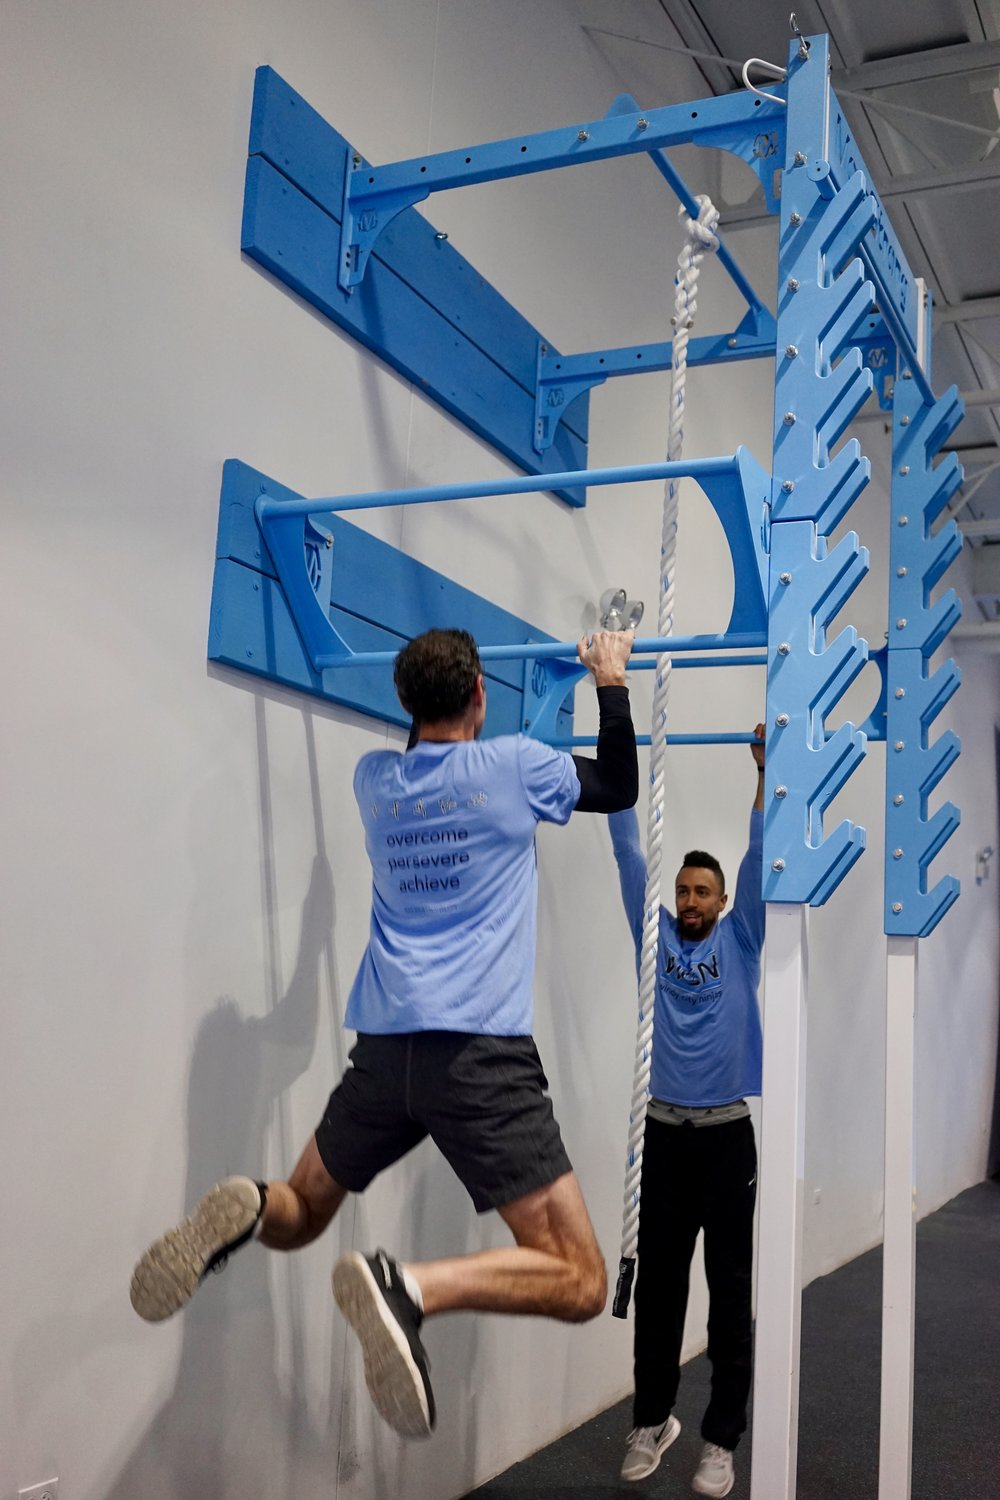 Tiered pull-up bars for practice